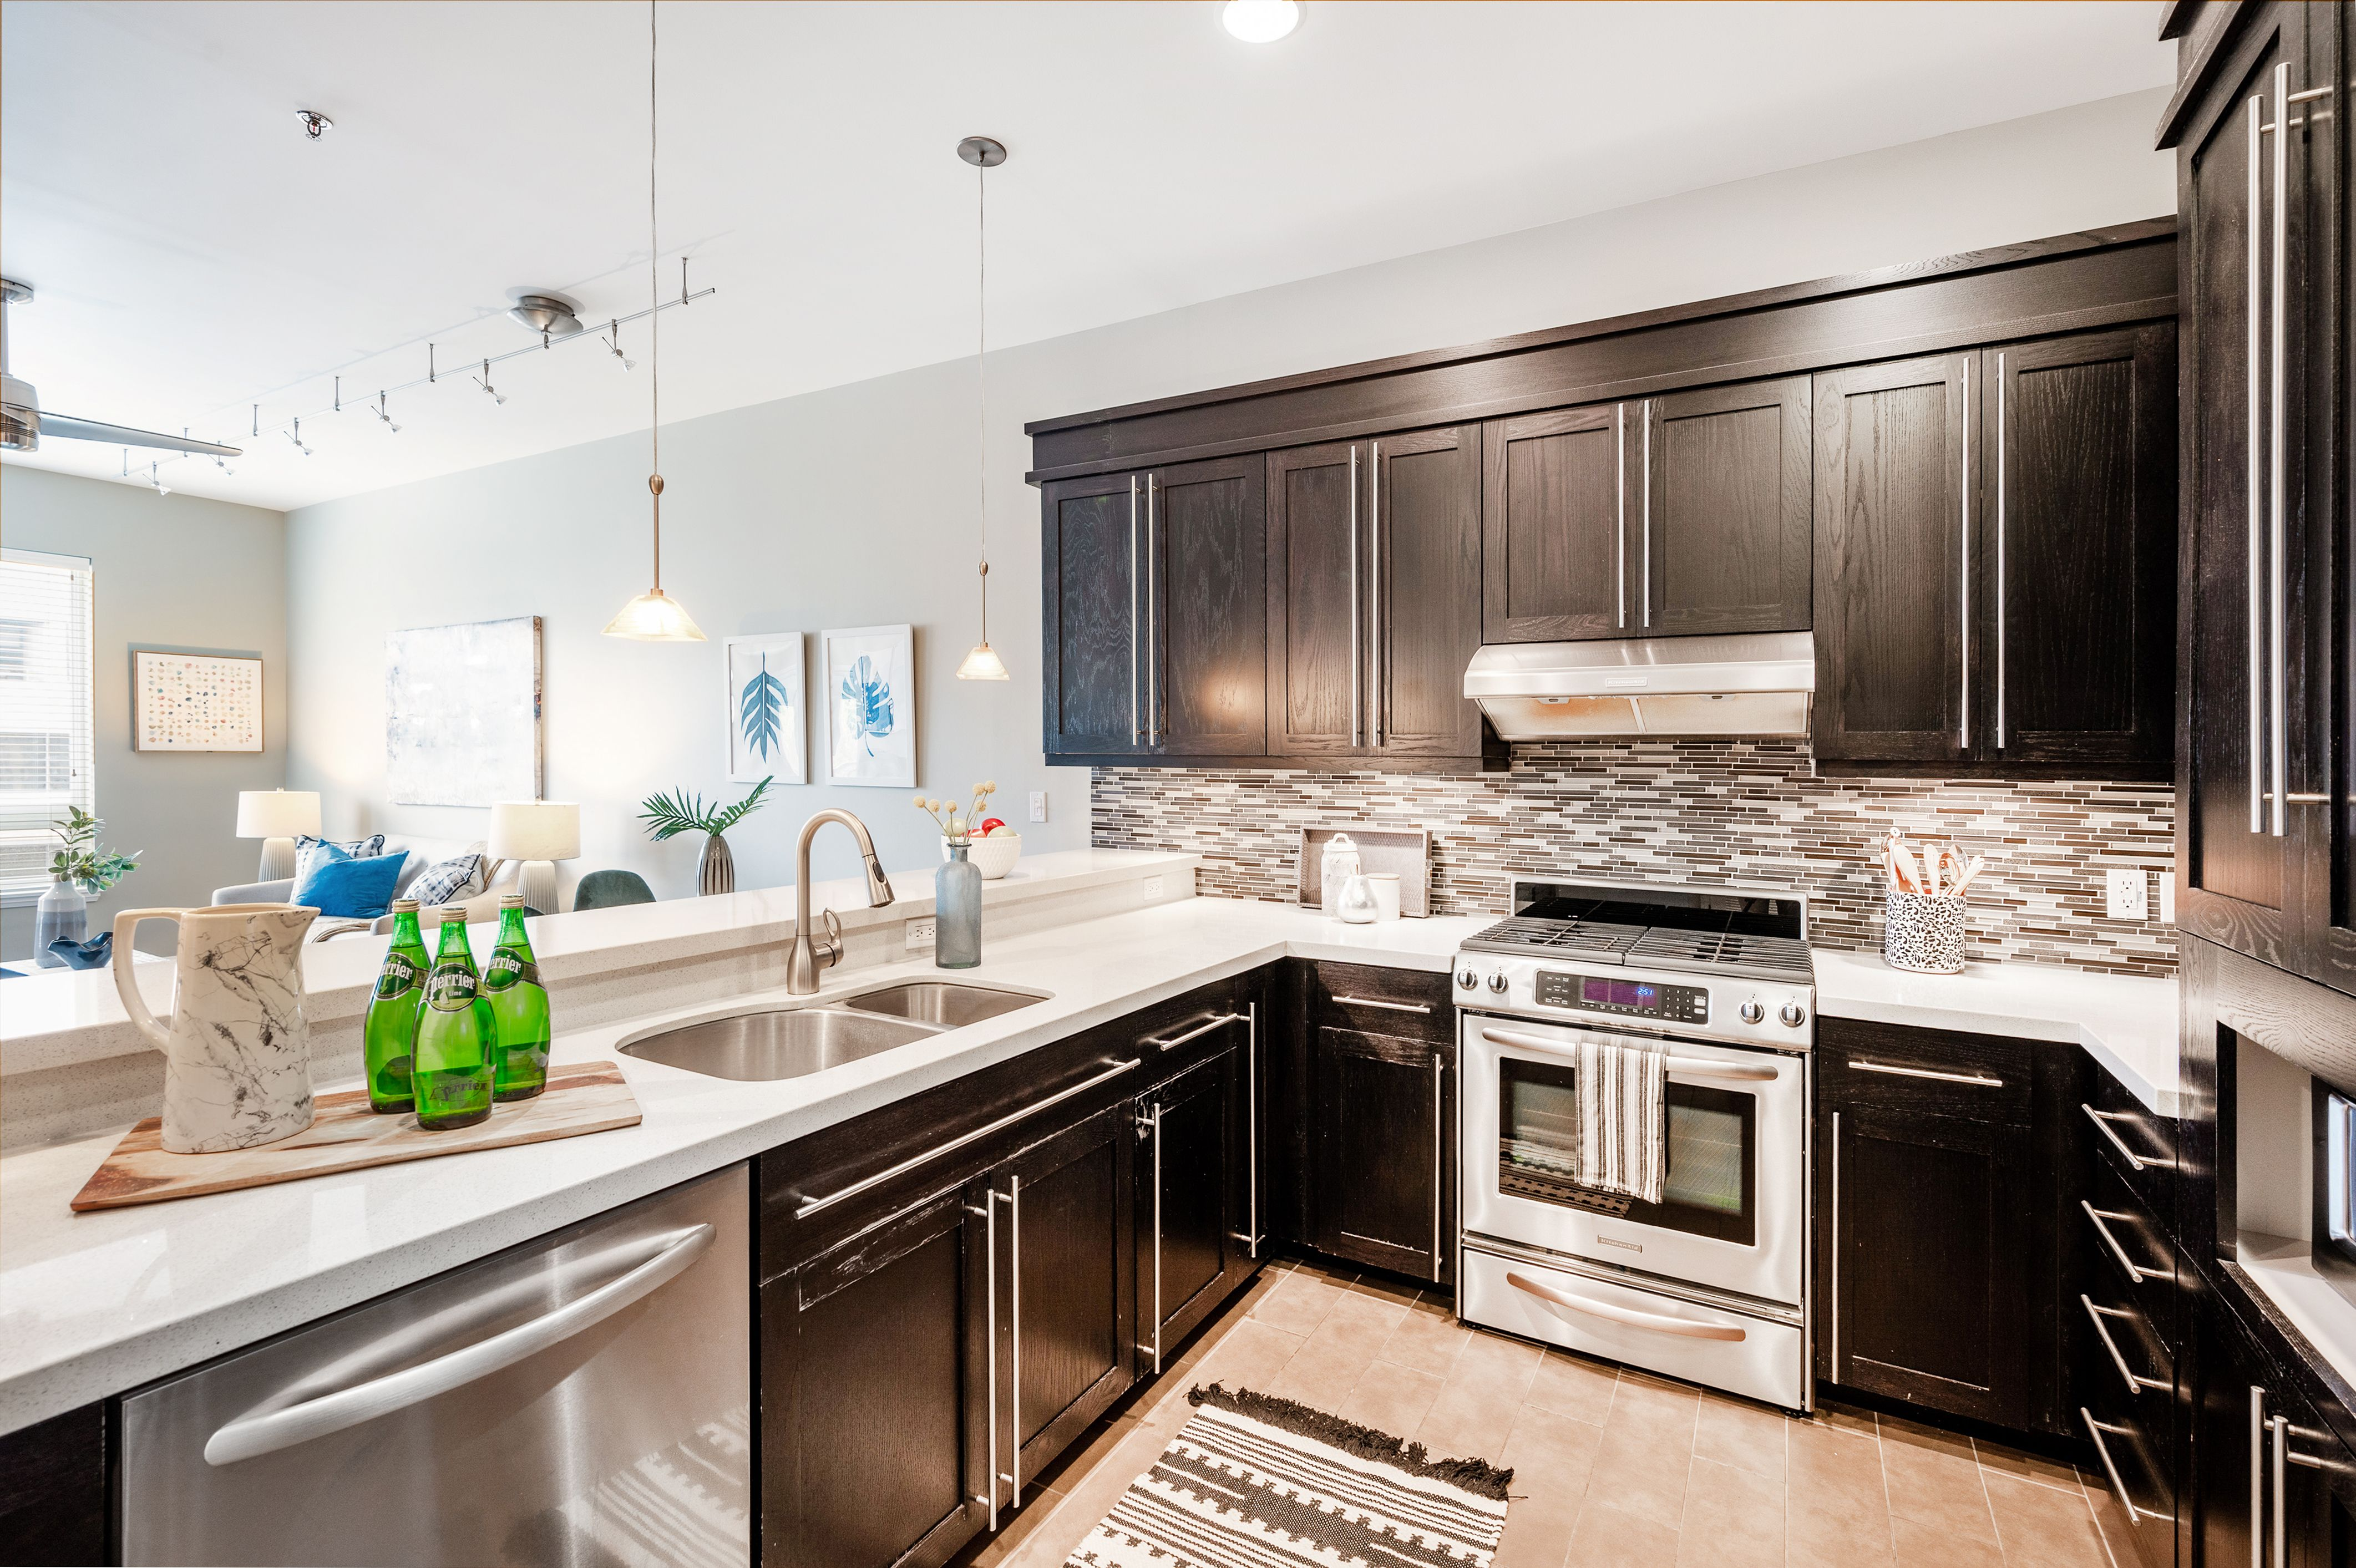 A lovely condo in the heart of downtown Salt Lake City. #WindermereUtah #SLC #SLCcondo #Kitchen #KitchenDesign #KitchenDecor #HomeDecor #HomeDesign #Modern #RealEstate #HomesForSale #UtahHomes #DreamKitchen #KitchenGoals #KitchenCabinets #KitchenBacksplash